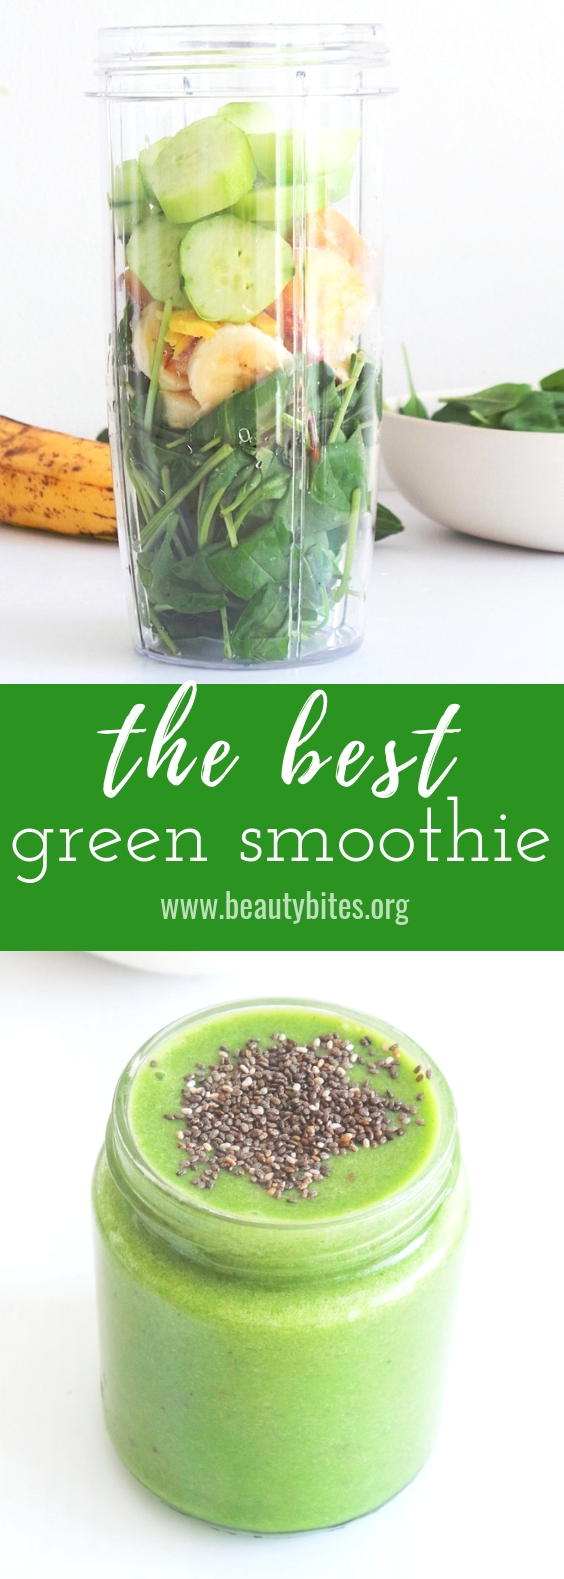 The best green smoothie ever! This healthy breakfast recipe will give you the energy you deserve in the morning. It is made with spinach, banana, ginger and a few other easy to find fruits and vegetables! It will help detox your body and make you feel great. Drinking this healthy smoothie daily can also help with weight loss and reducing chronic inflammation, because it contains a number of anti-inflammatory and fat-burning foods.